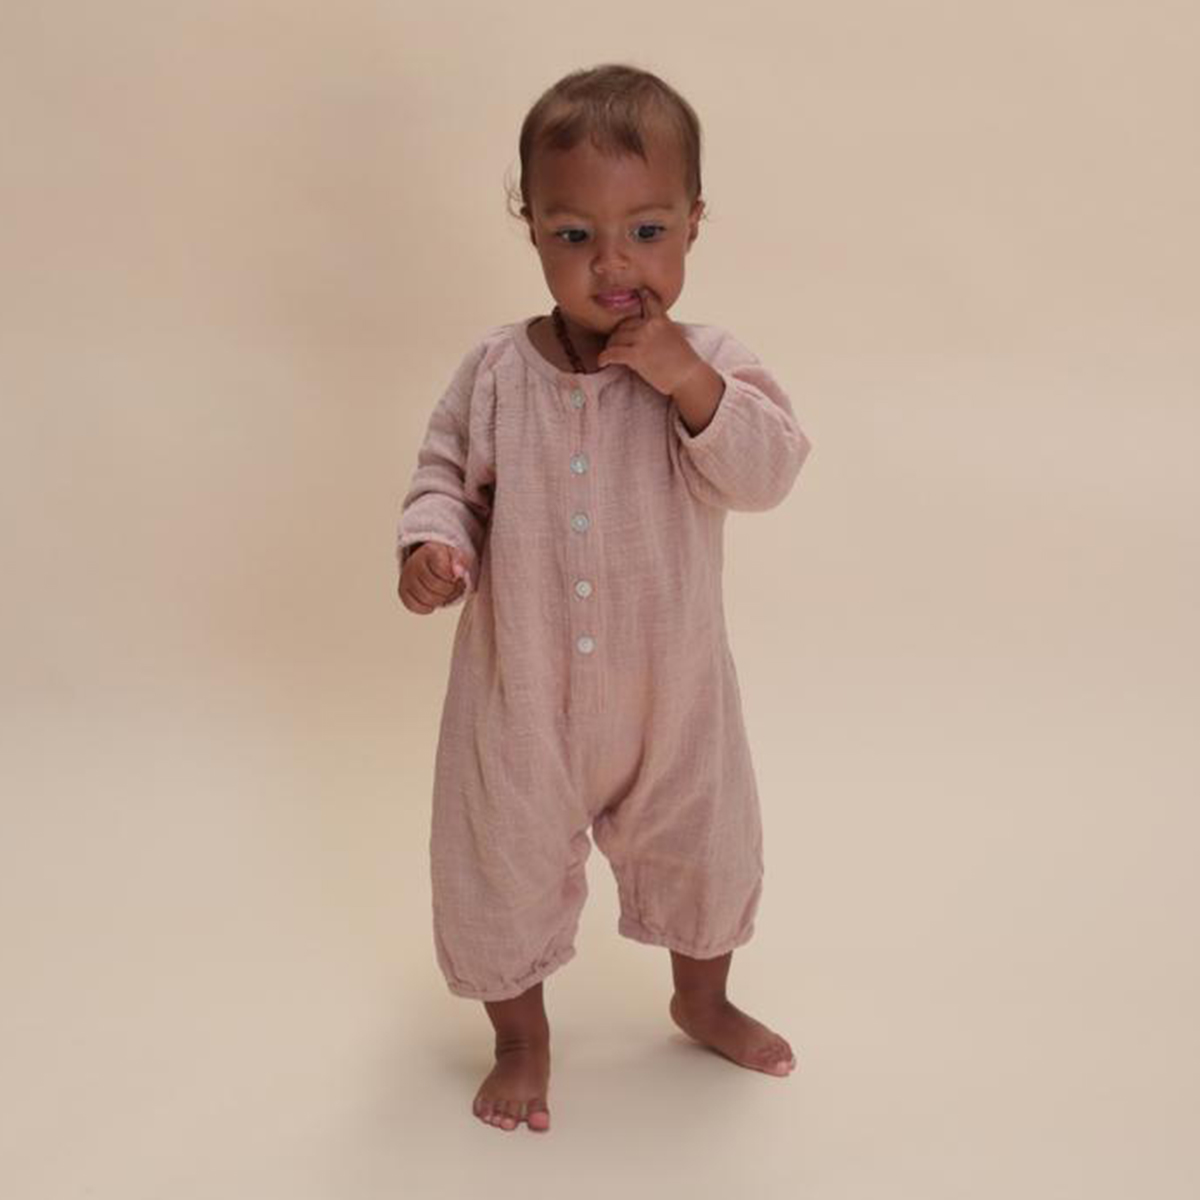 Summer and Storm Long Sleeve Playsuit in Misty Rose on baby